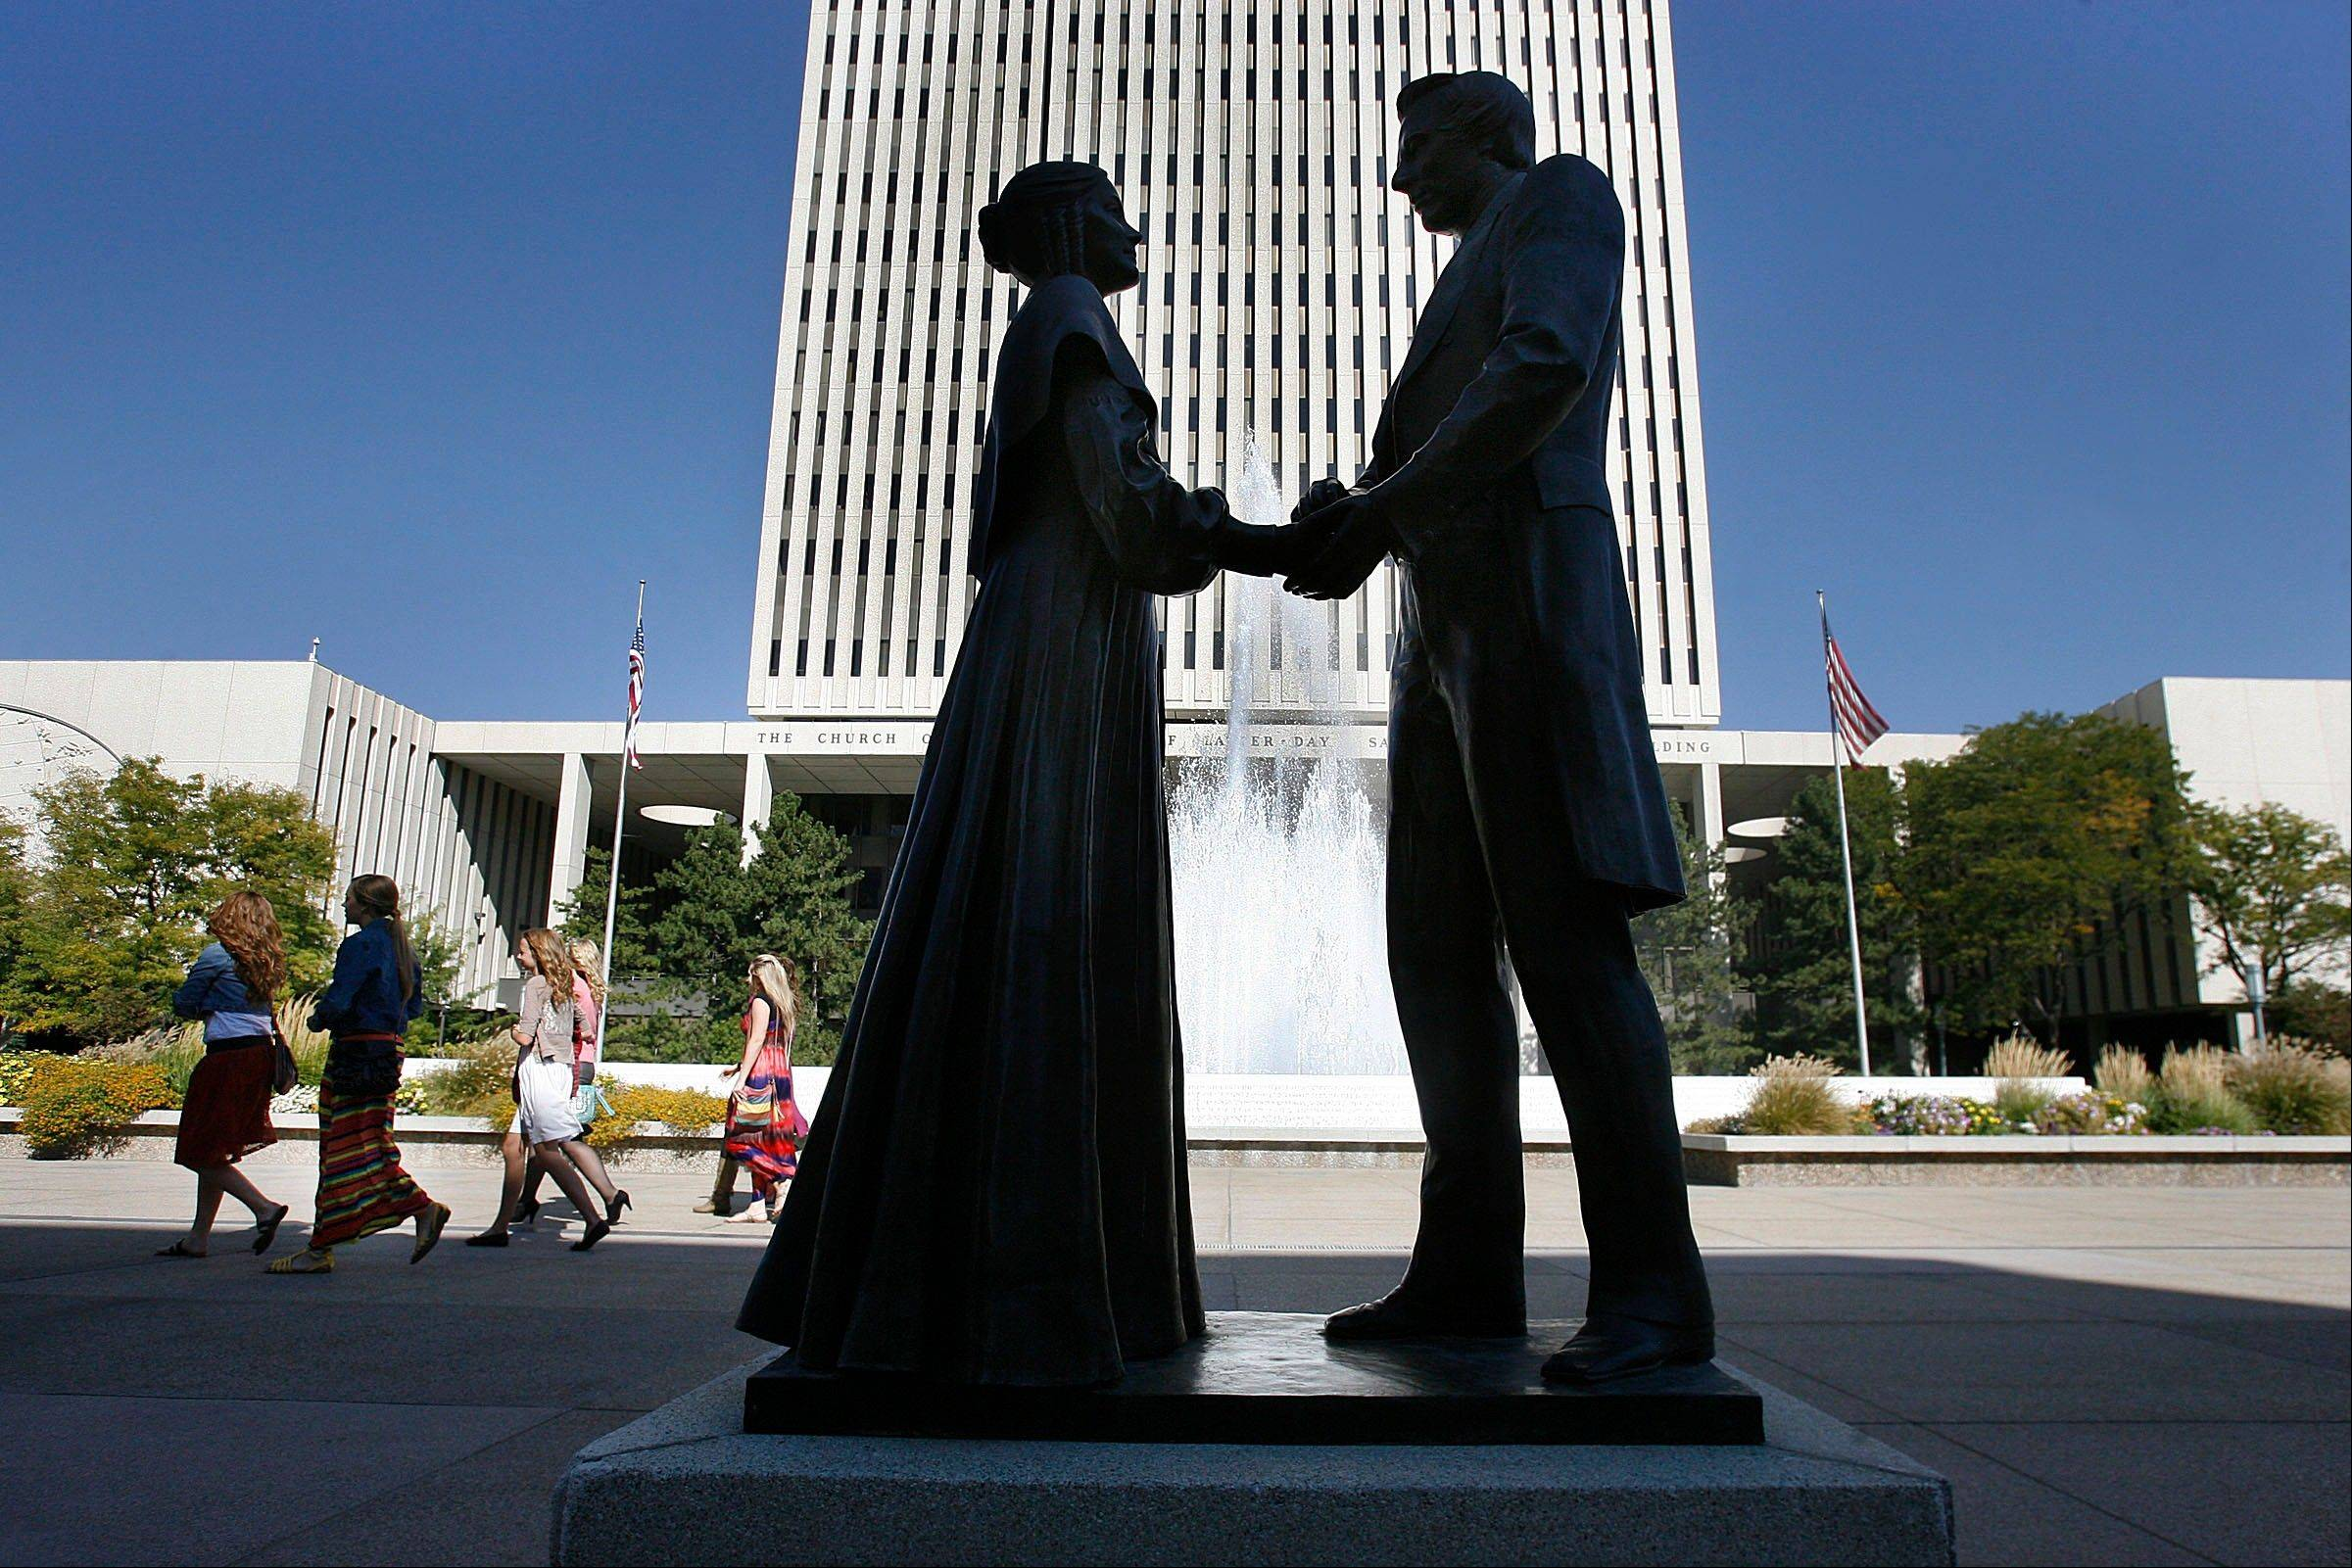 Women walk by a statue of Joseph and Emma Smith outside the church office building during the 182nd Semiannual General Conference for The Church of Jesus Christ of Latter-day Saints in Salt Lake City. The Church of Jesus Christ of Latter-day Saints has entered a new era after Mitt Romney's run for president in 2012. His candidacy illuminated a changing landscape for the religion, where Americans are growing more curious than fearful about the faith, and allies can be found even among Christians with deep misgivings about Mormon beliefs.